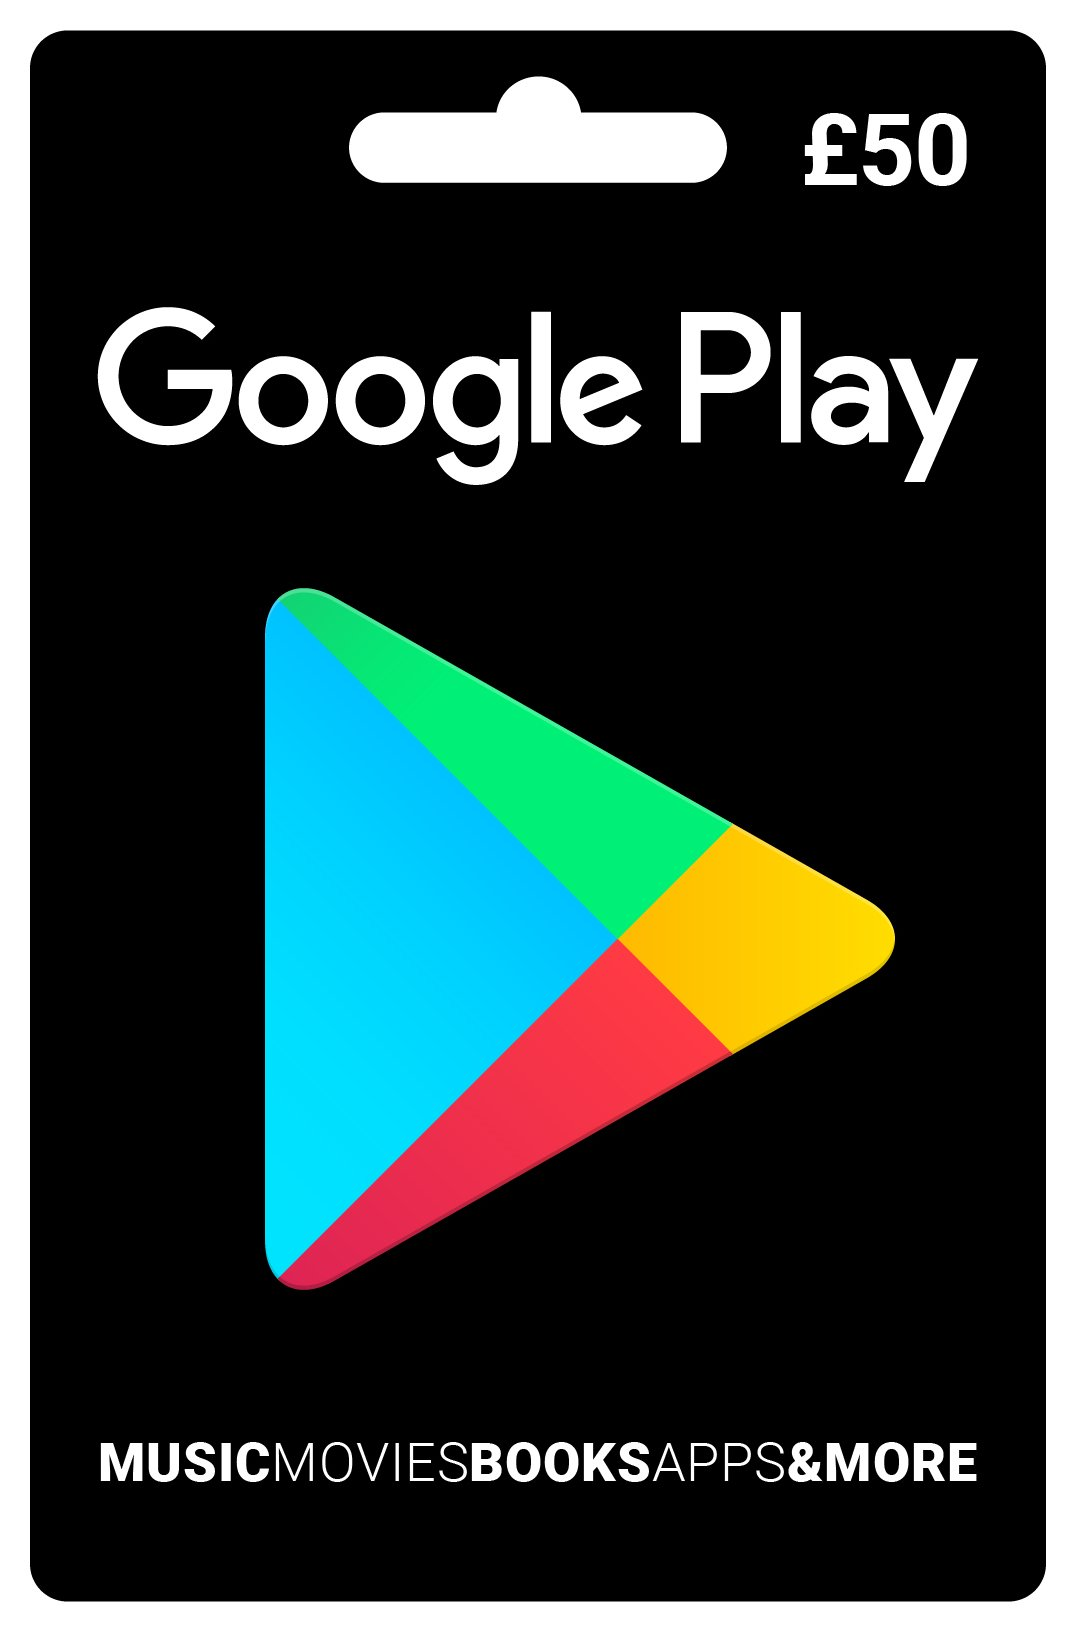 Image of 50 pounds Google Play Voucher